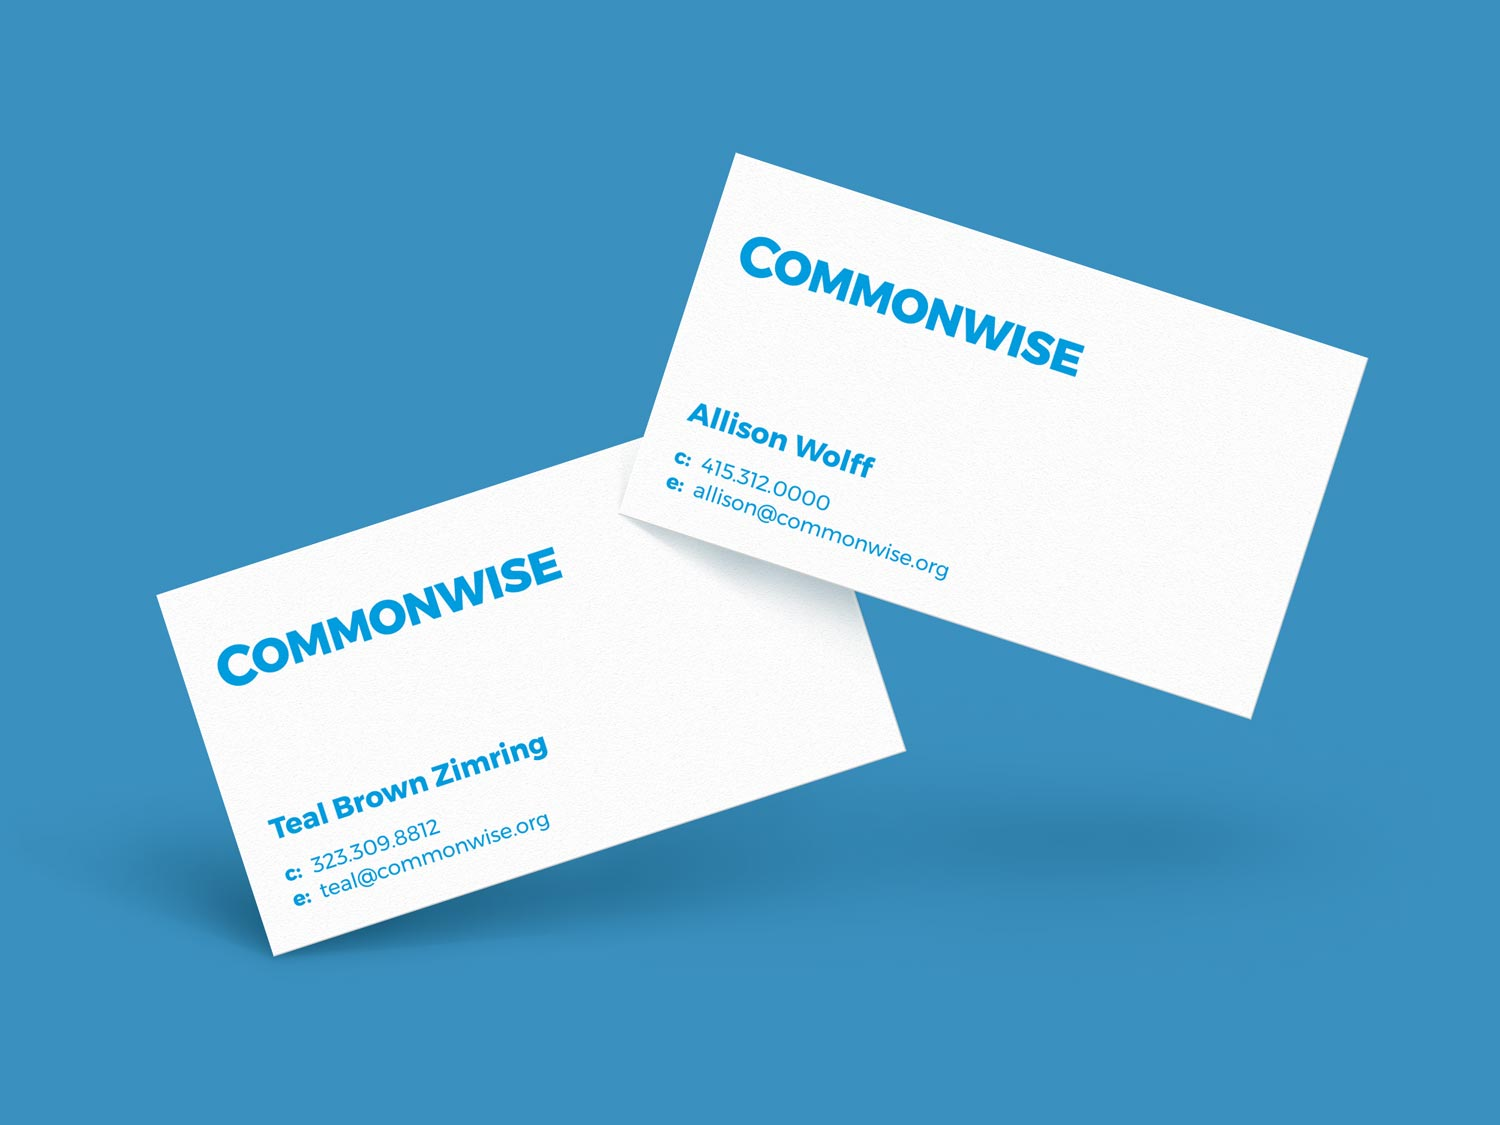 Commonwise Business Cards